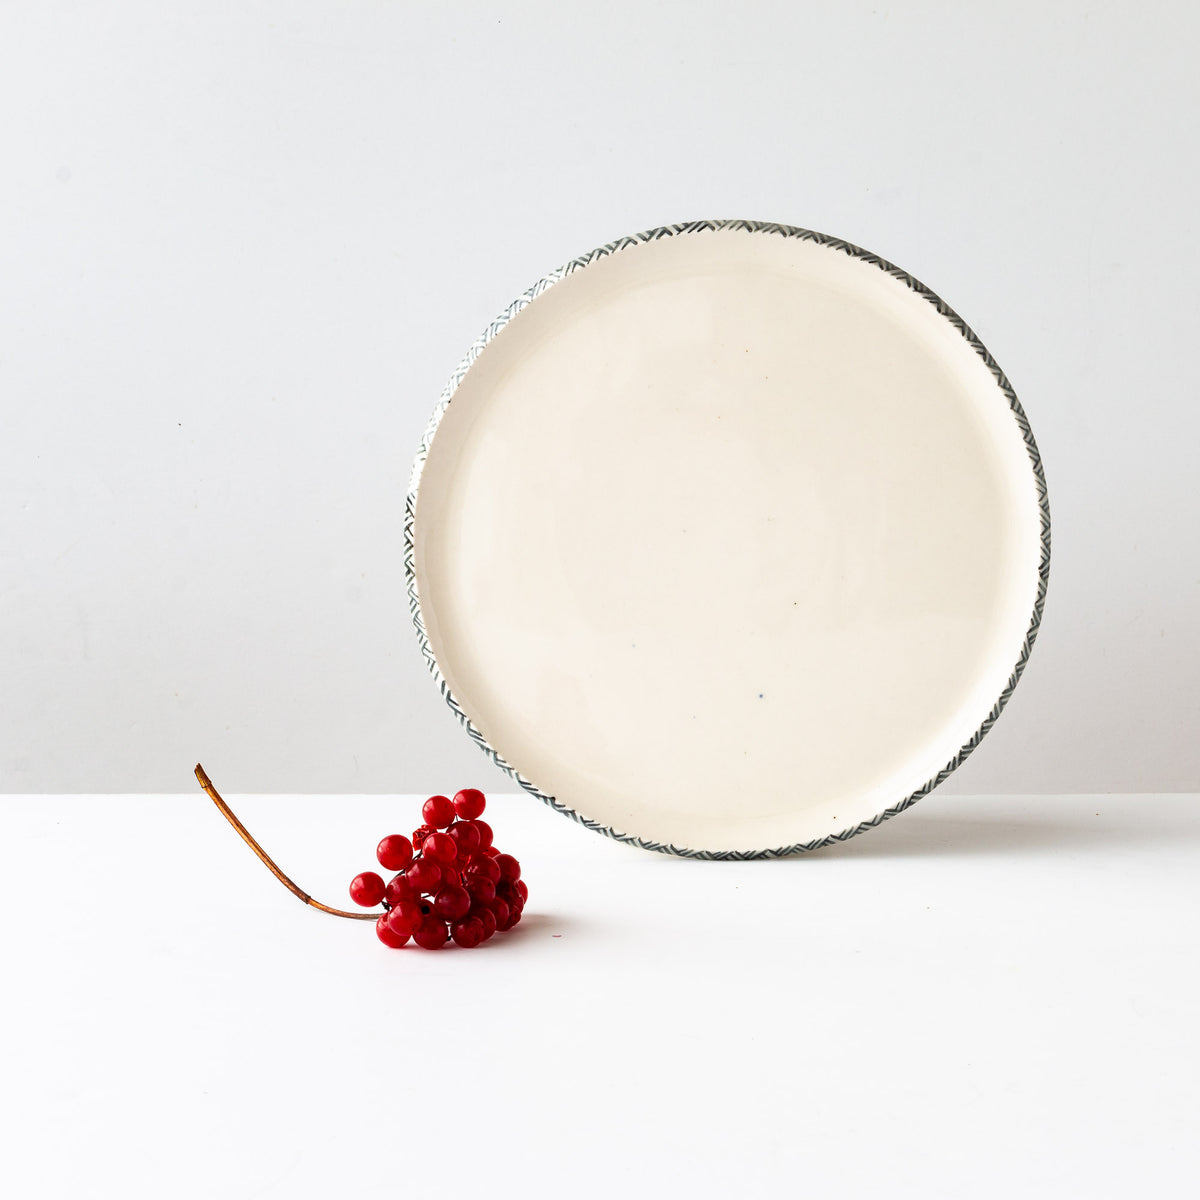 Front View - Handmade Porcelain Plate With Rim Adorned With a Painted Frieze - Sold by Chic & Basta